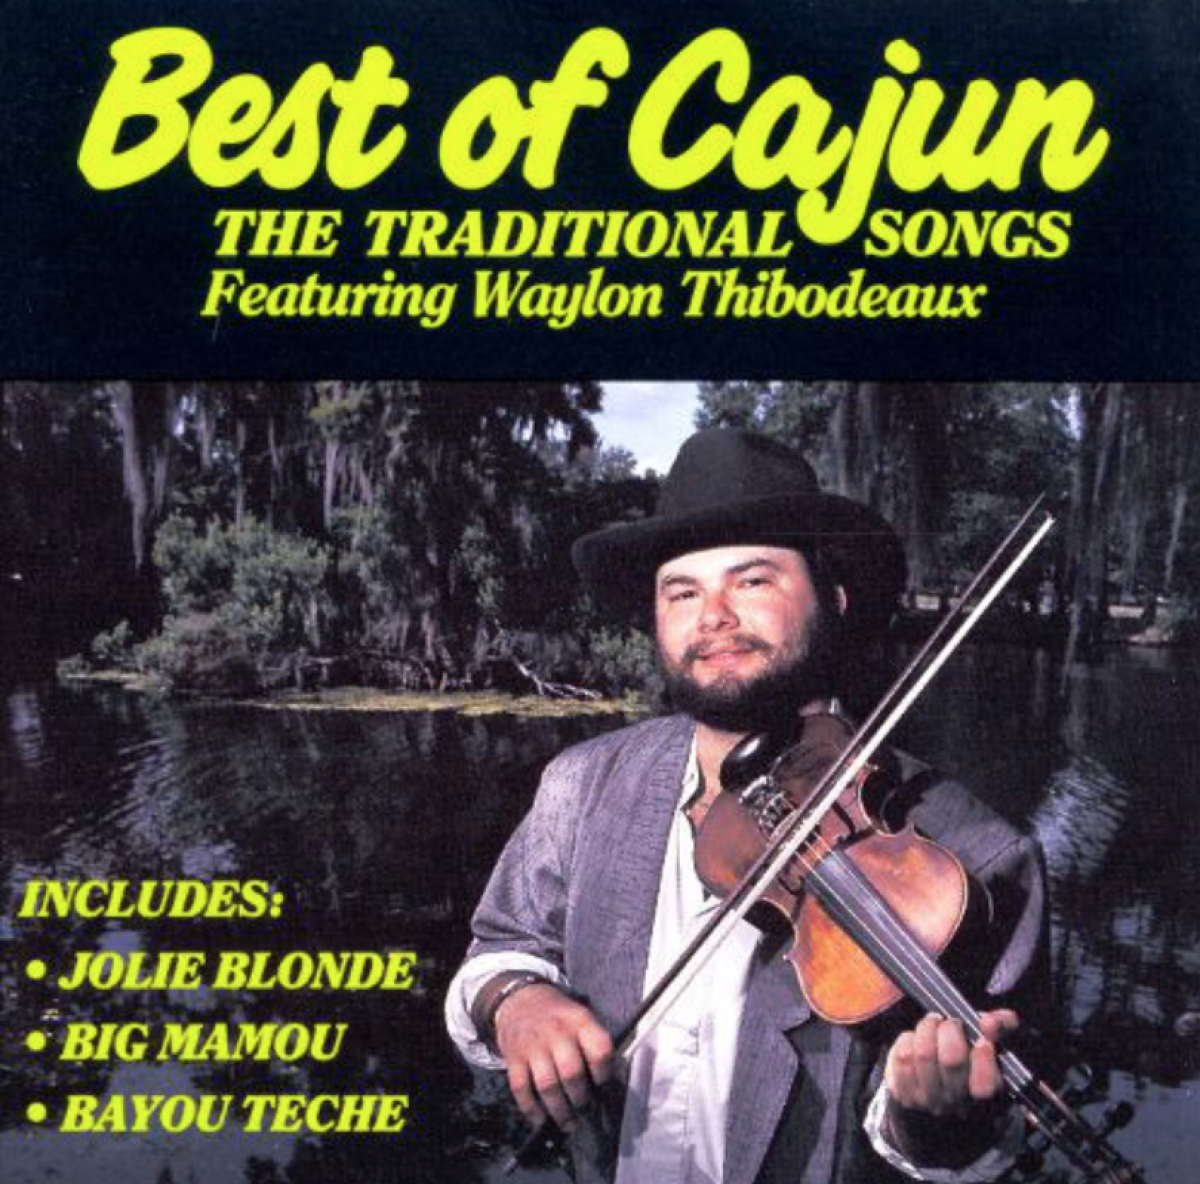 Waylon Thibodeaux - Best of Cajun (The traditional songs)